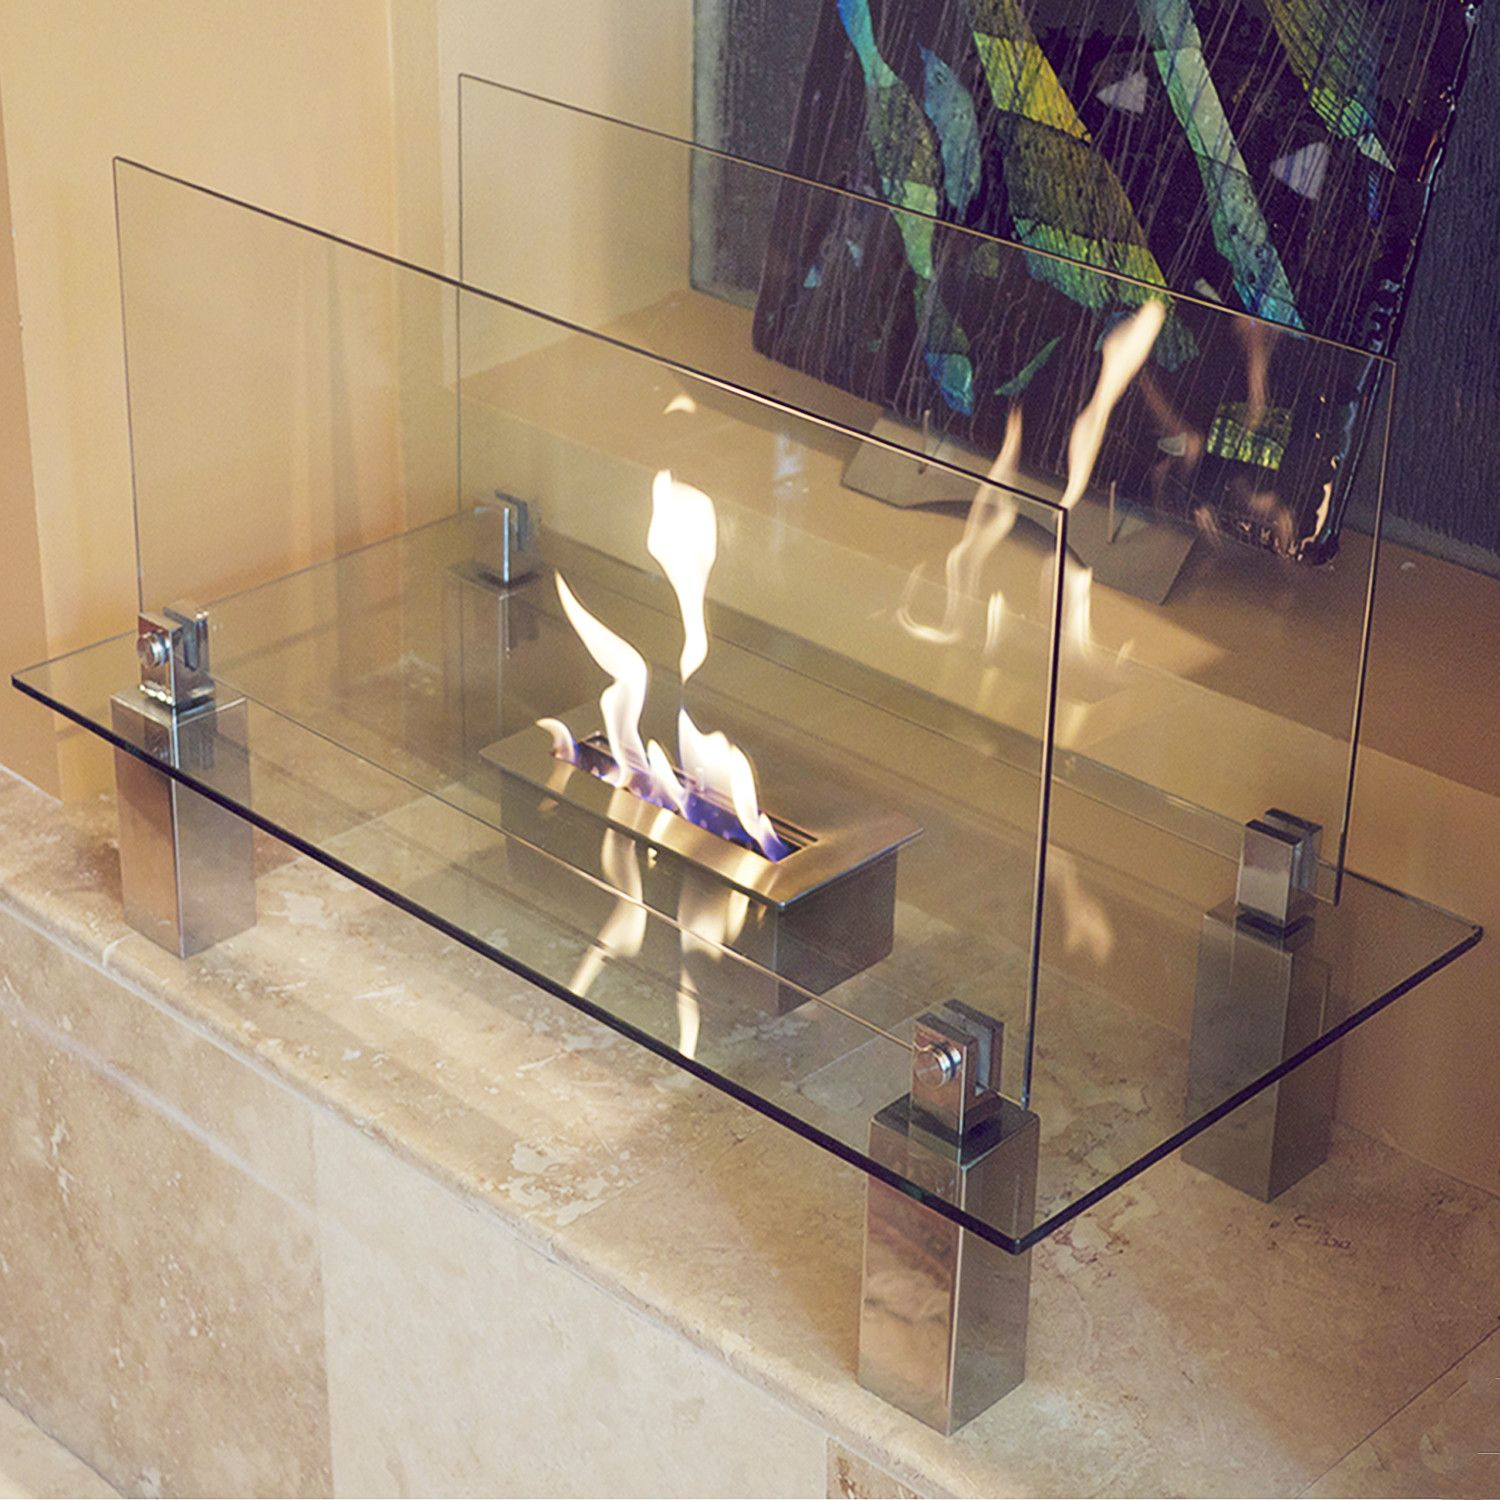 Minimalist Portable Fireplace. Burns clean Ecofriendly Bio-Ethanol fuel.